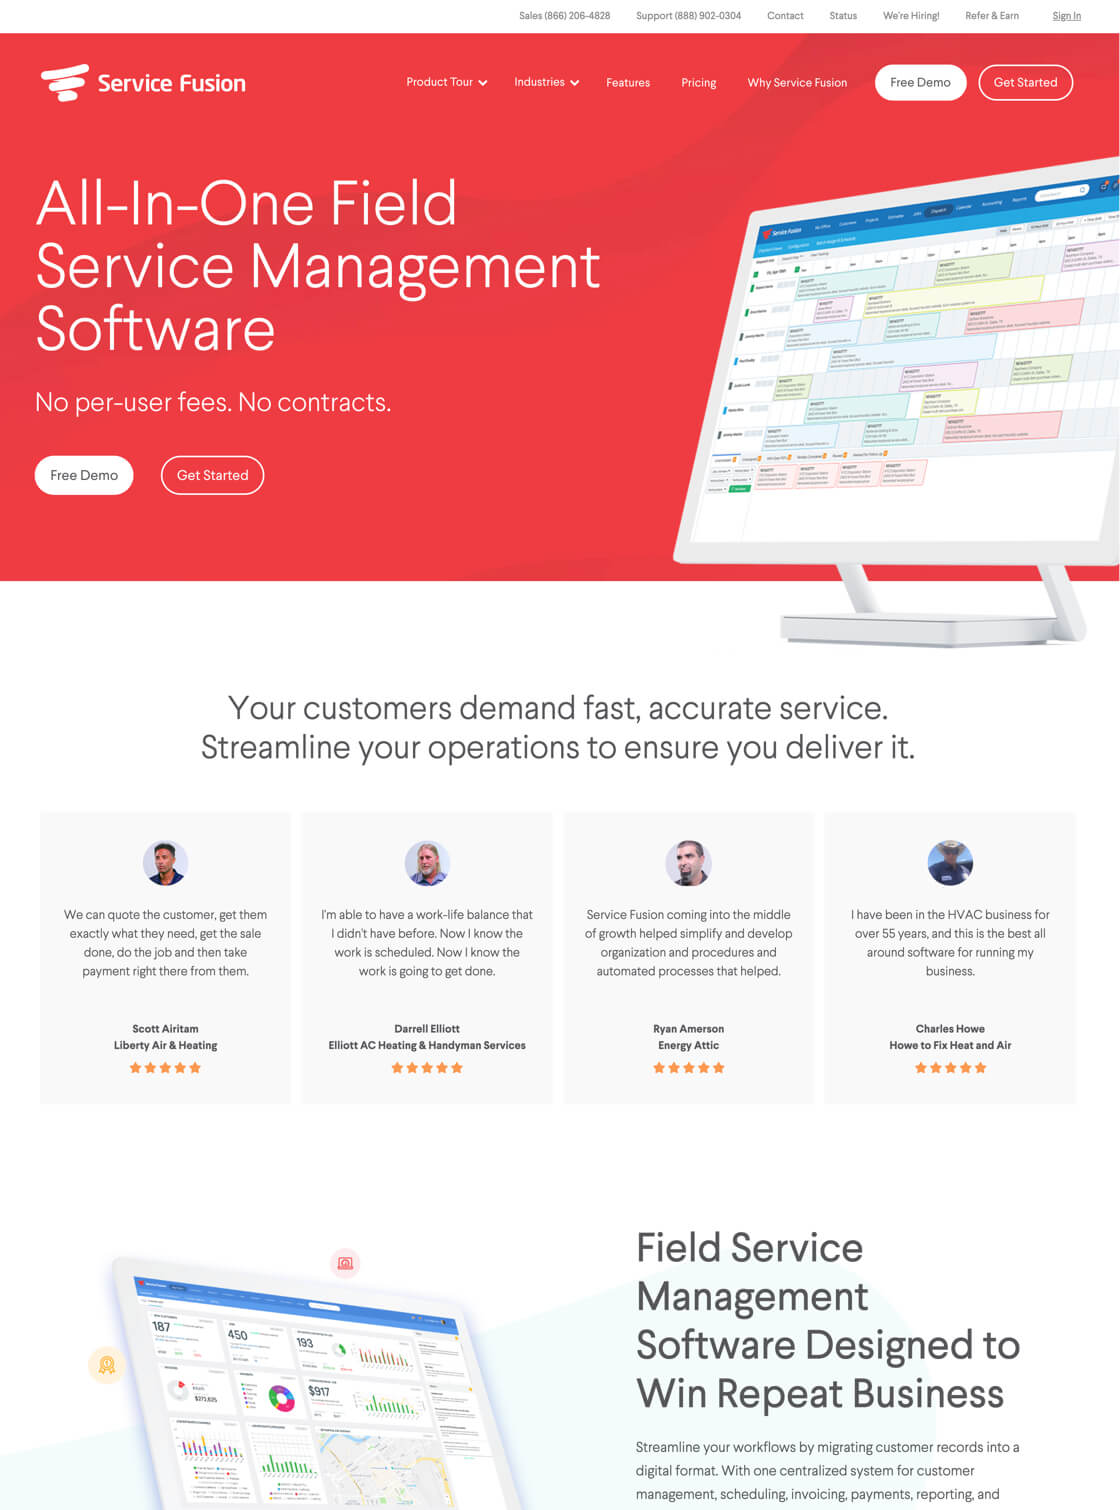 Service Fusion website on desktop